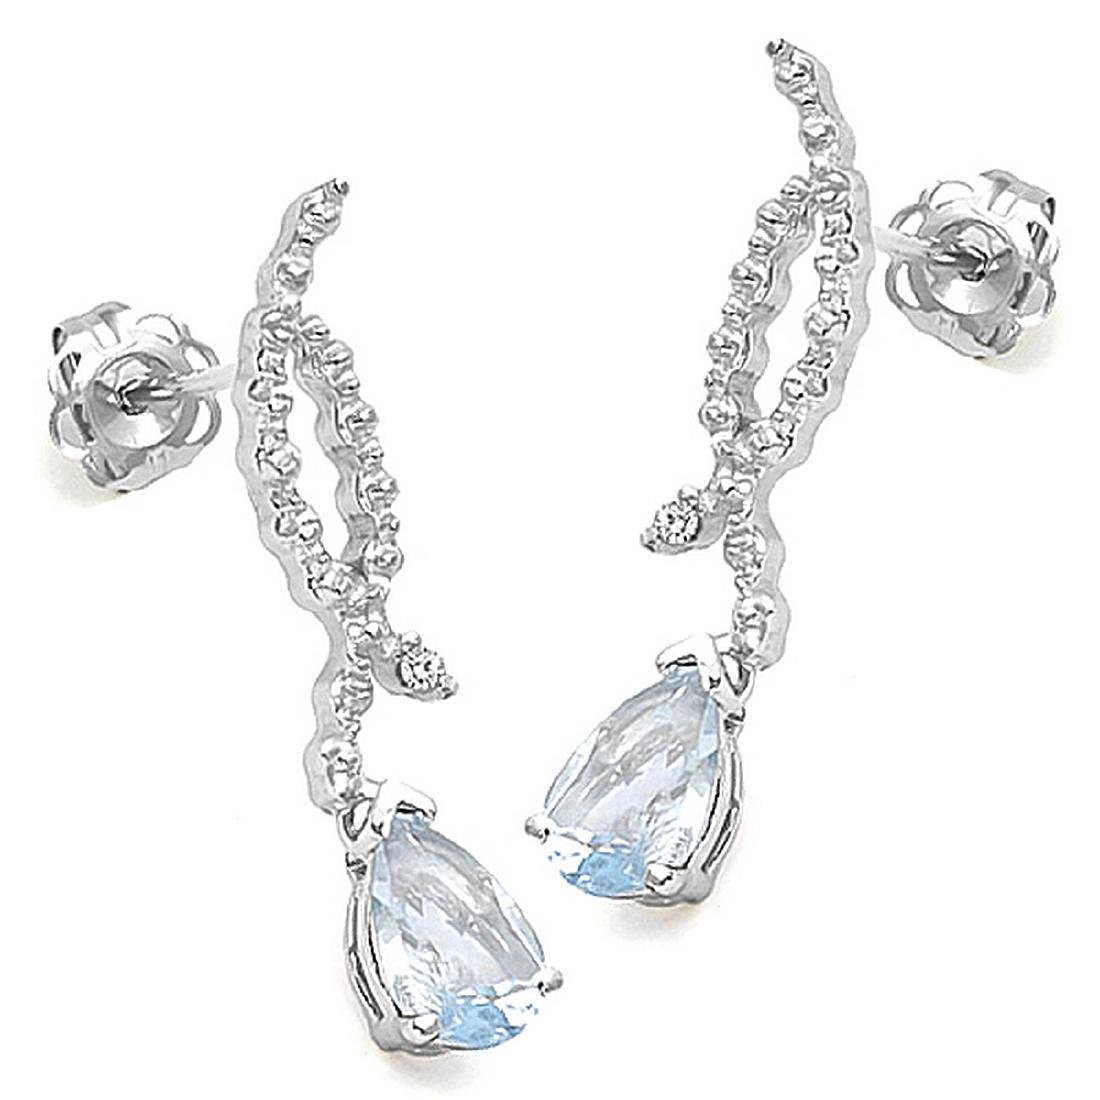 Aquamarine and Diamond Dangle Earrings in Sterling - 2